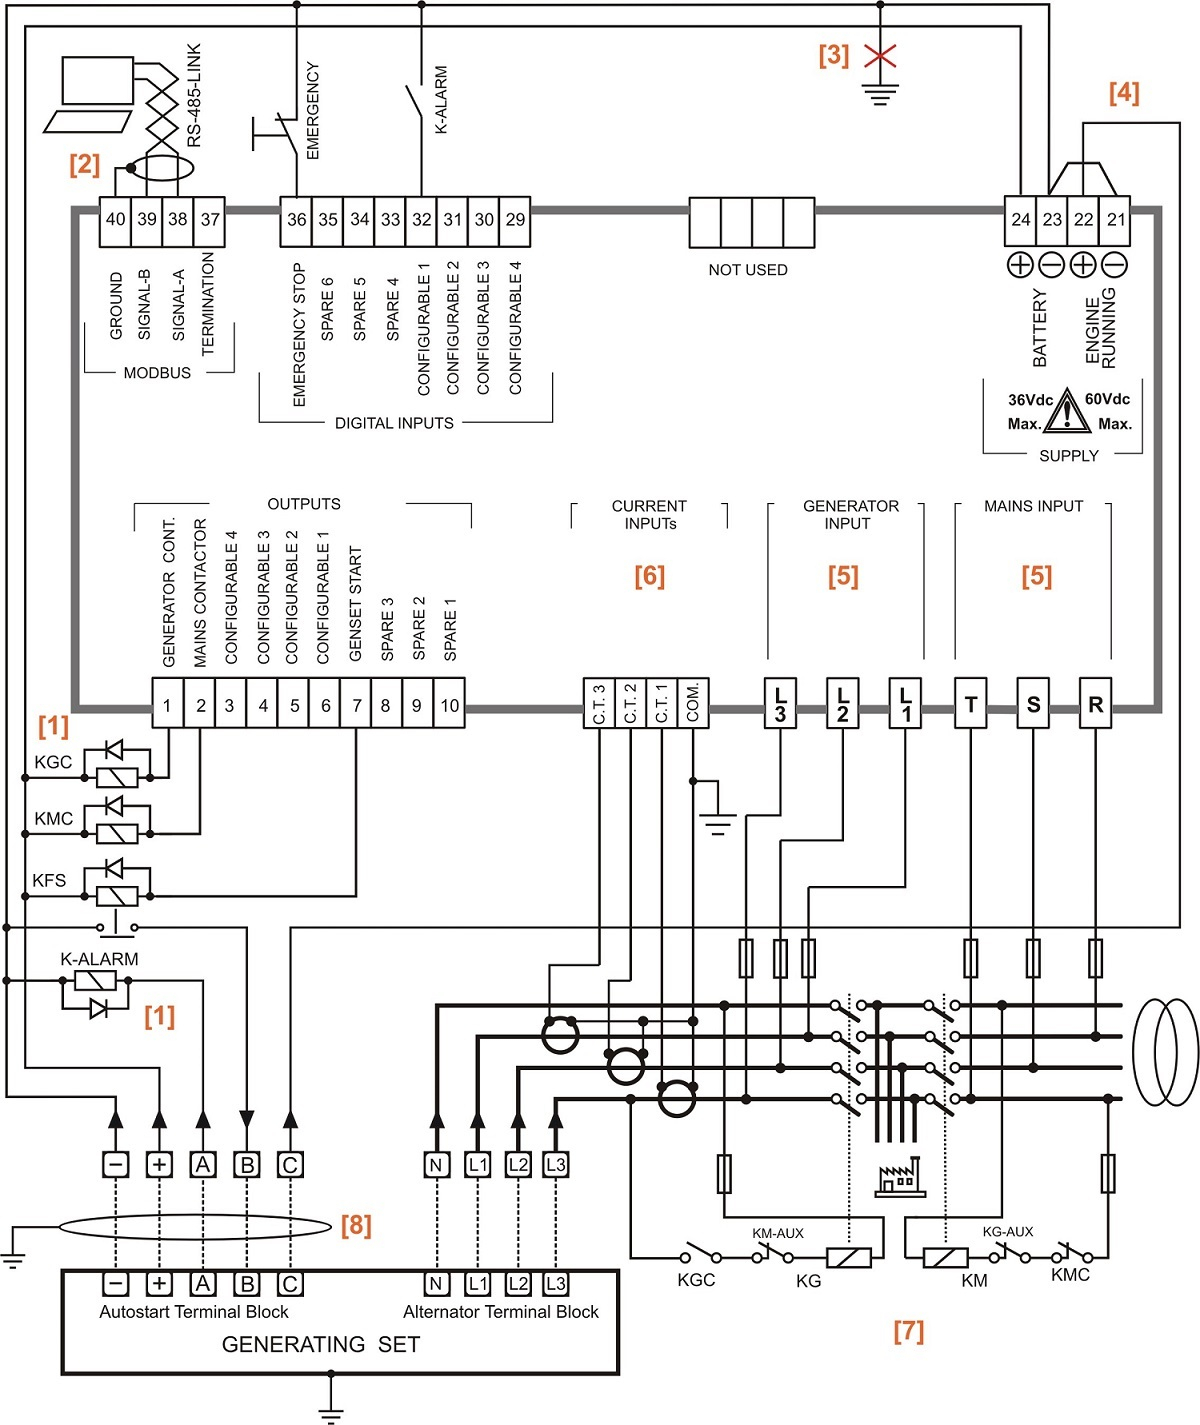 Cutler Hammer Automatic Transfer Switch Wiring Diagram - Wiring Diagram 30  Transfer Switch Air Pressor Wiring